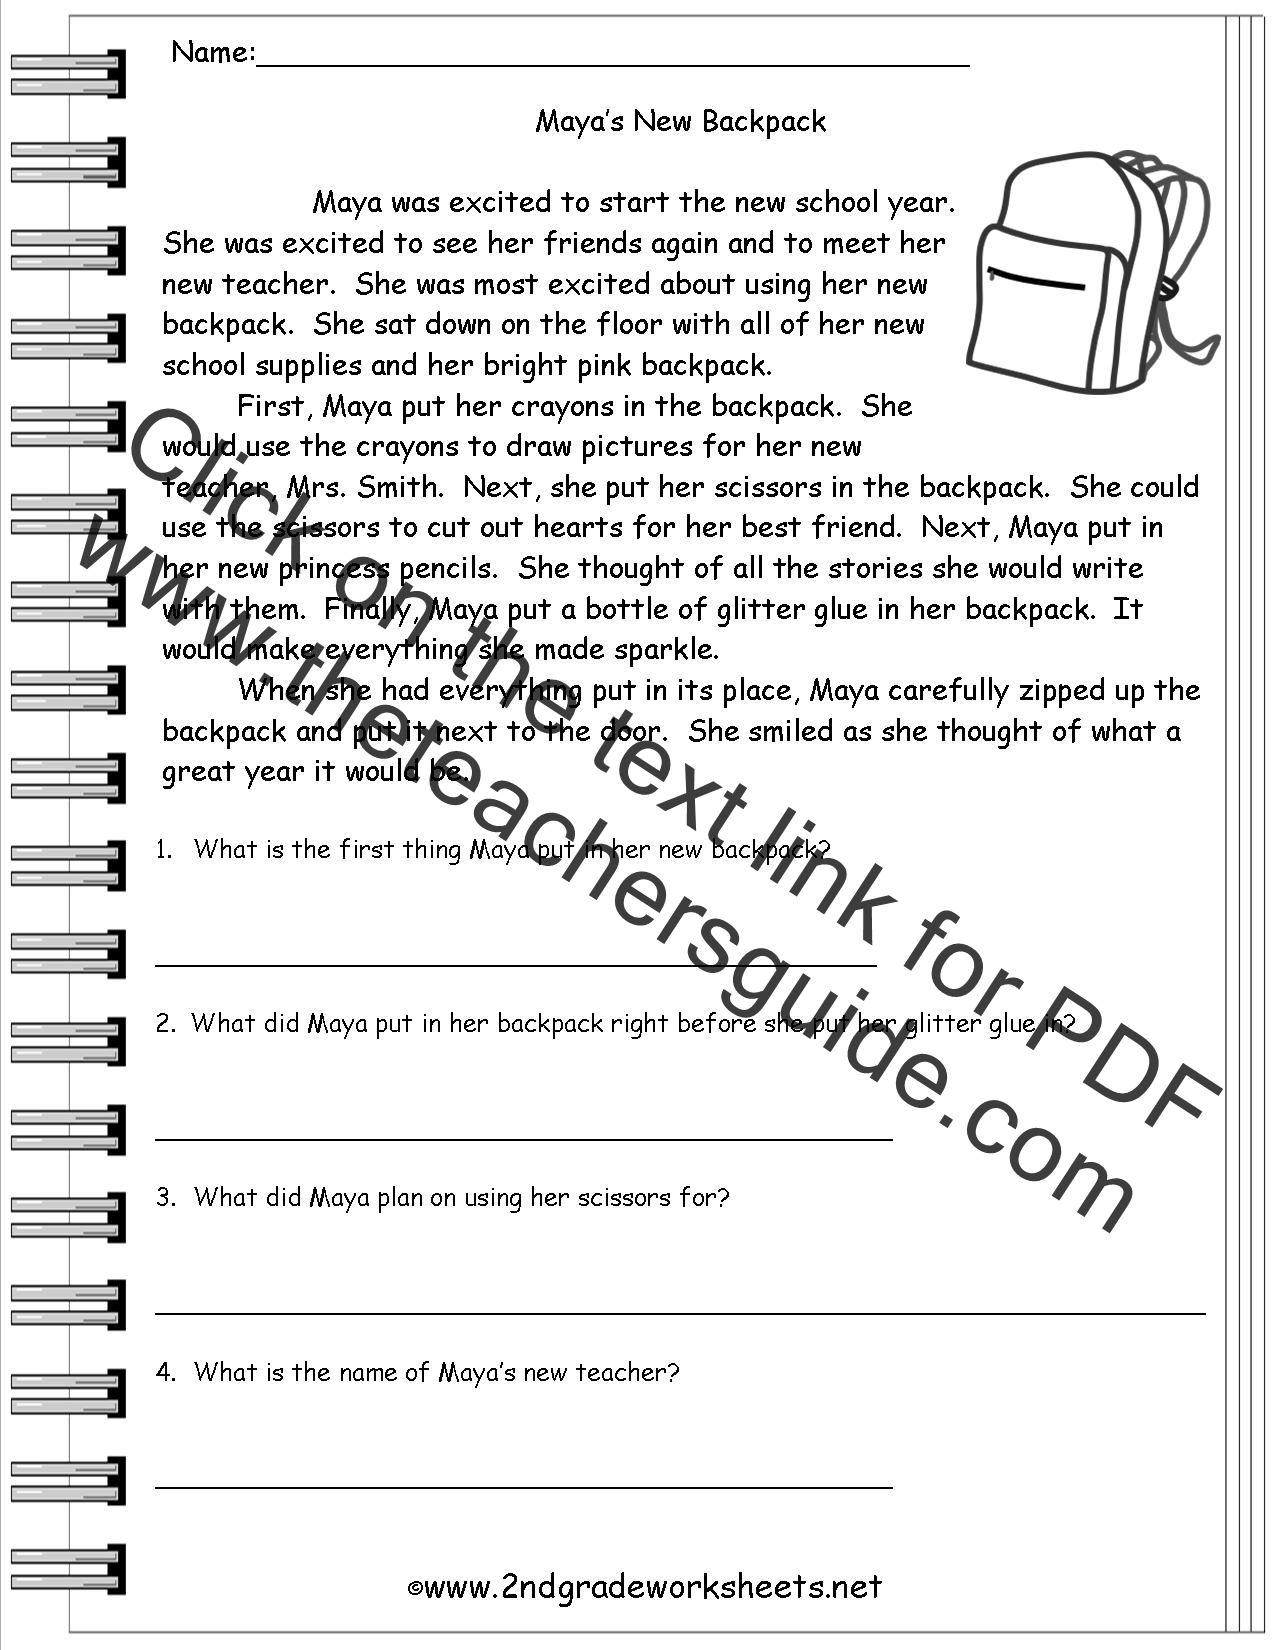 Worksheet 2nd Grade Reading Comprehension Printables reading worksheeets literature worksheets